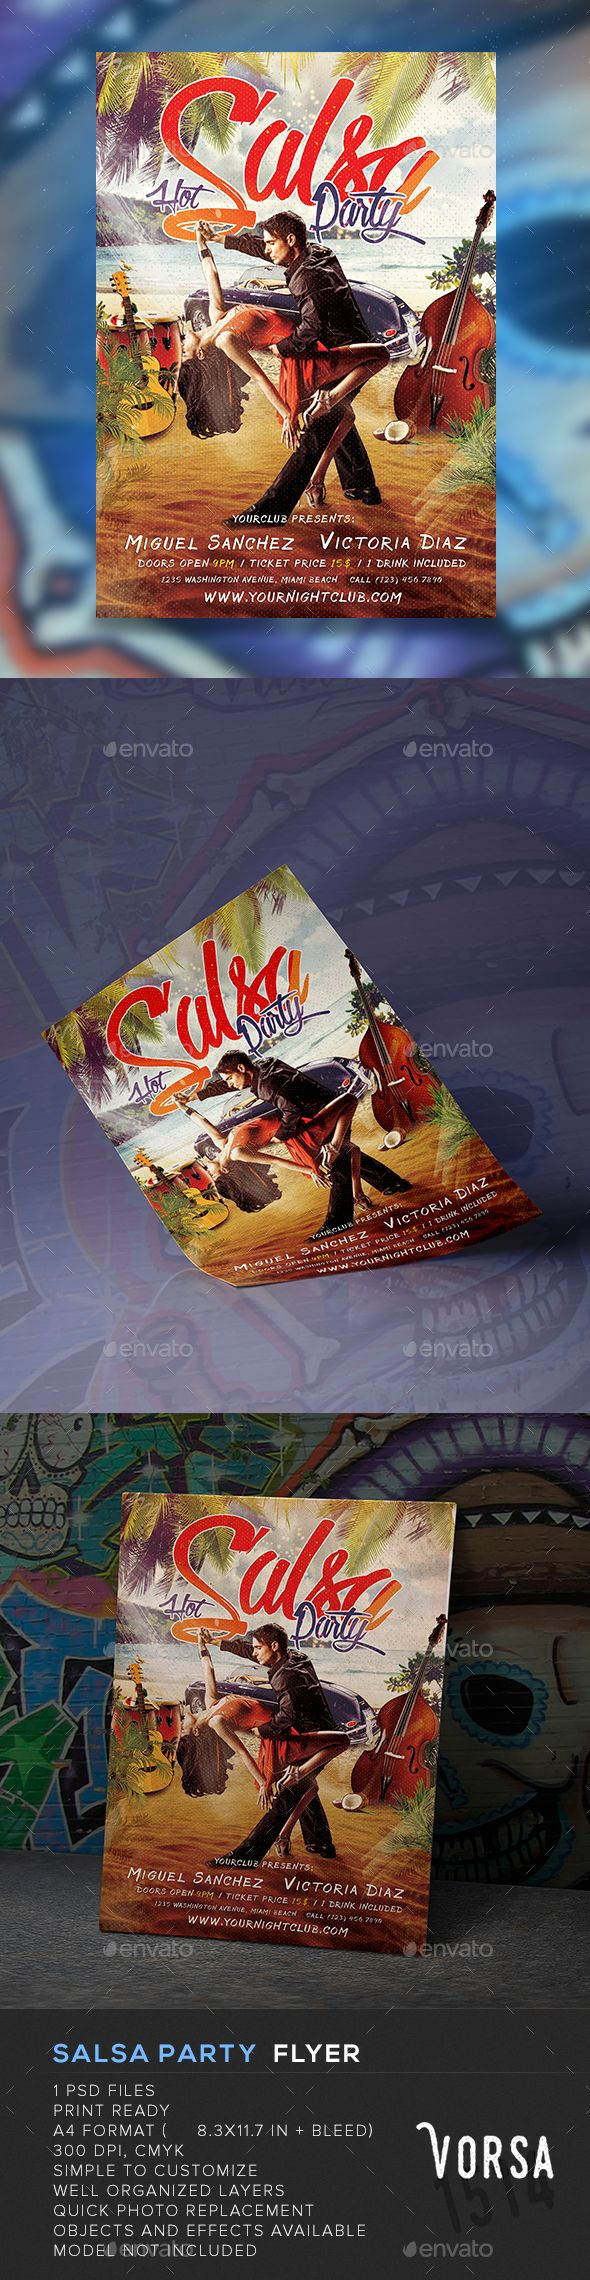 Salsa Party Flyer - Clubs & Parties Events